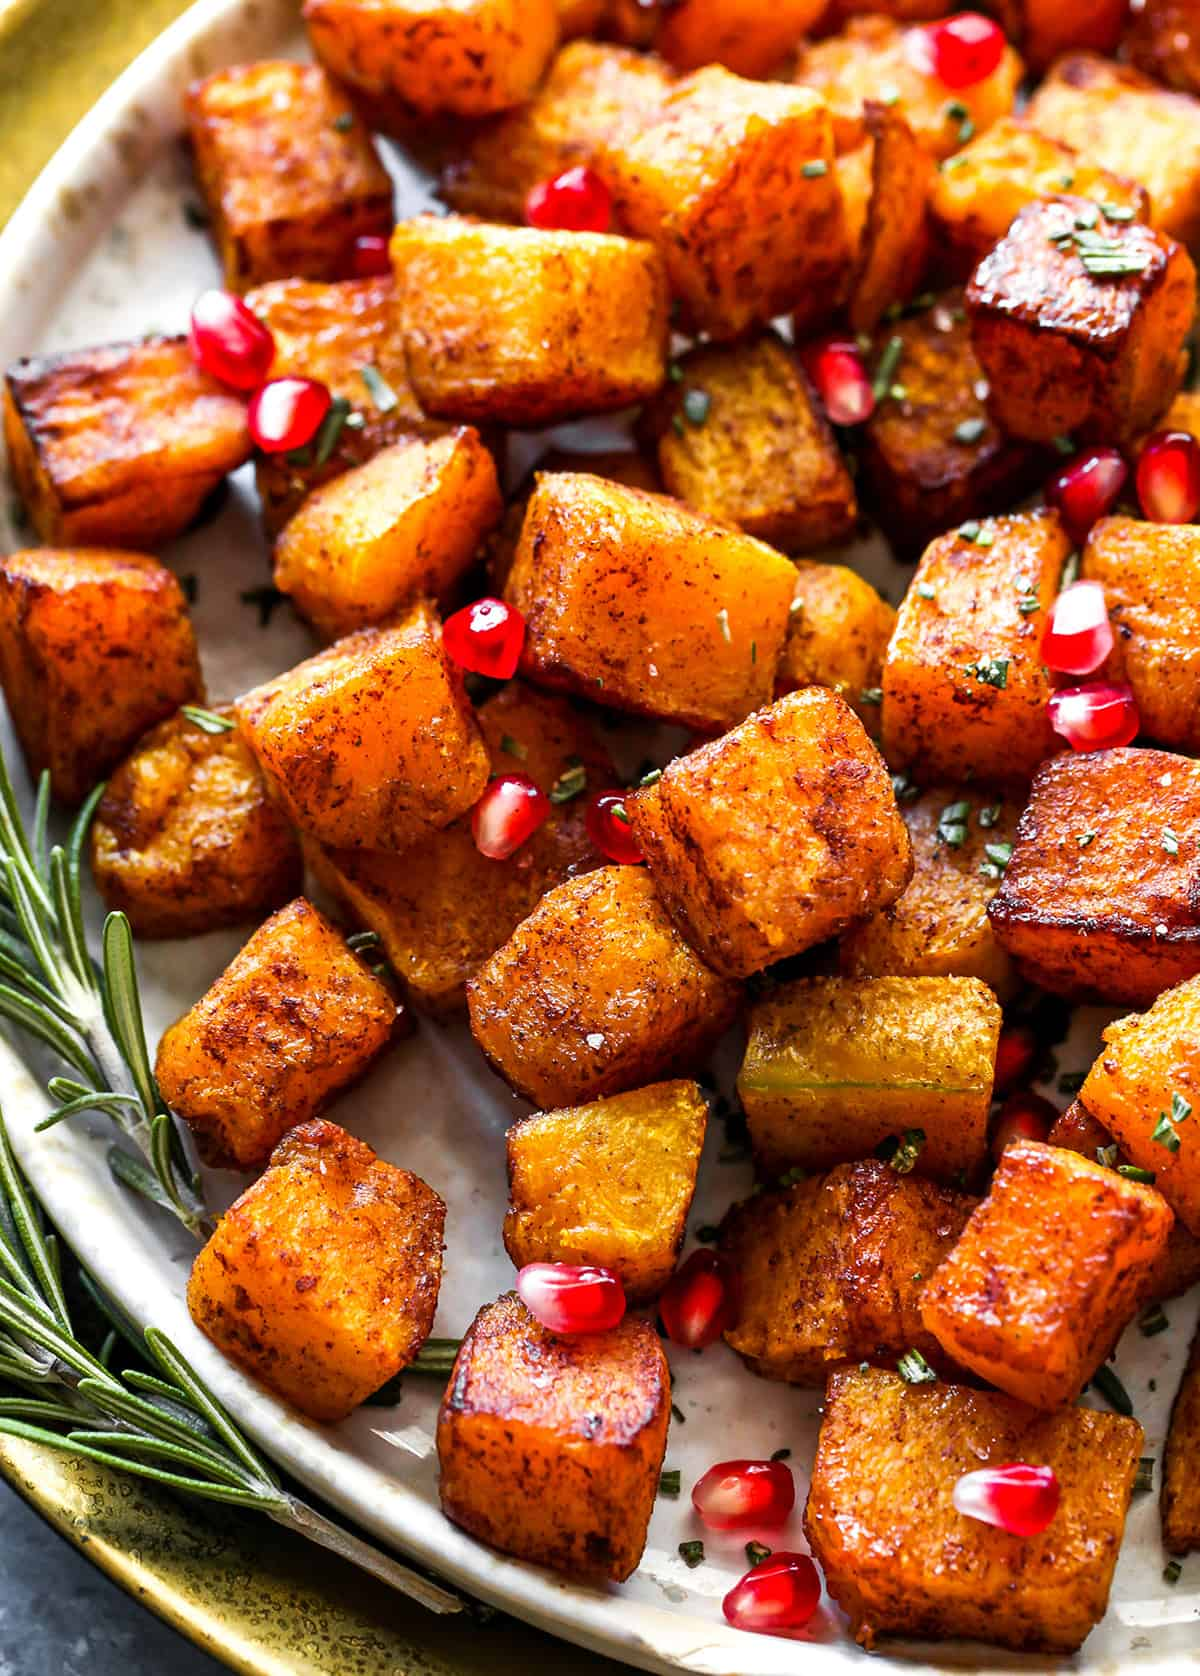 Cinnamon Roasted Butternut Squash Joyfoodsunshine